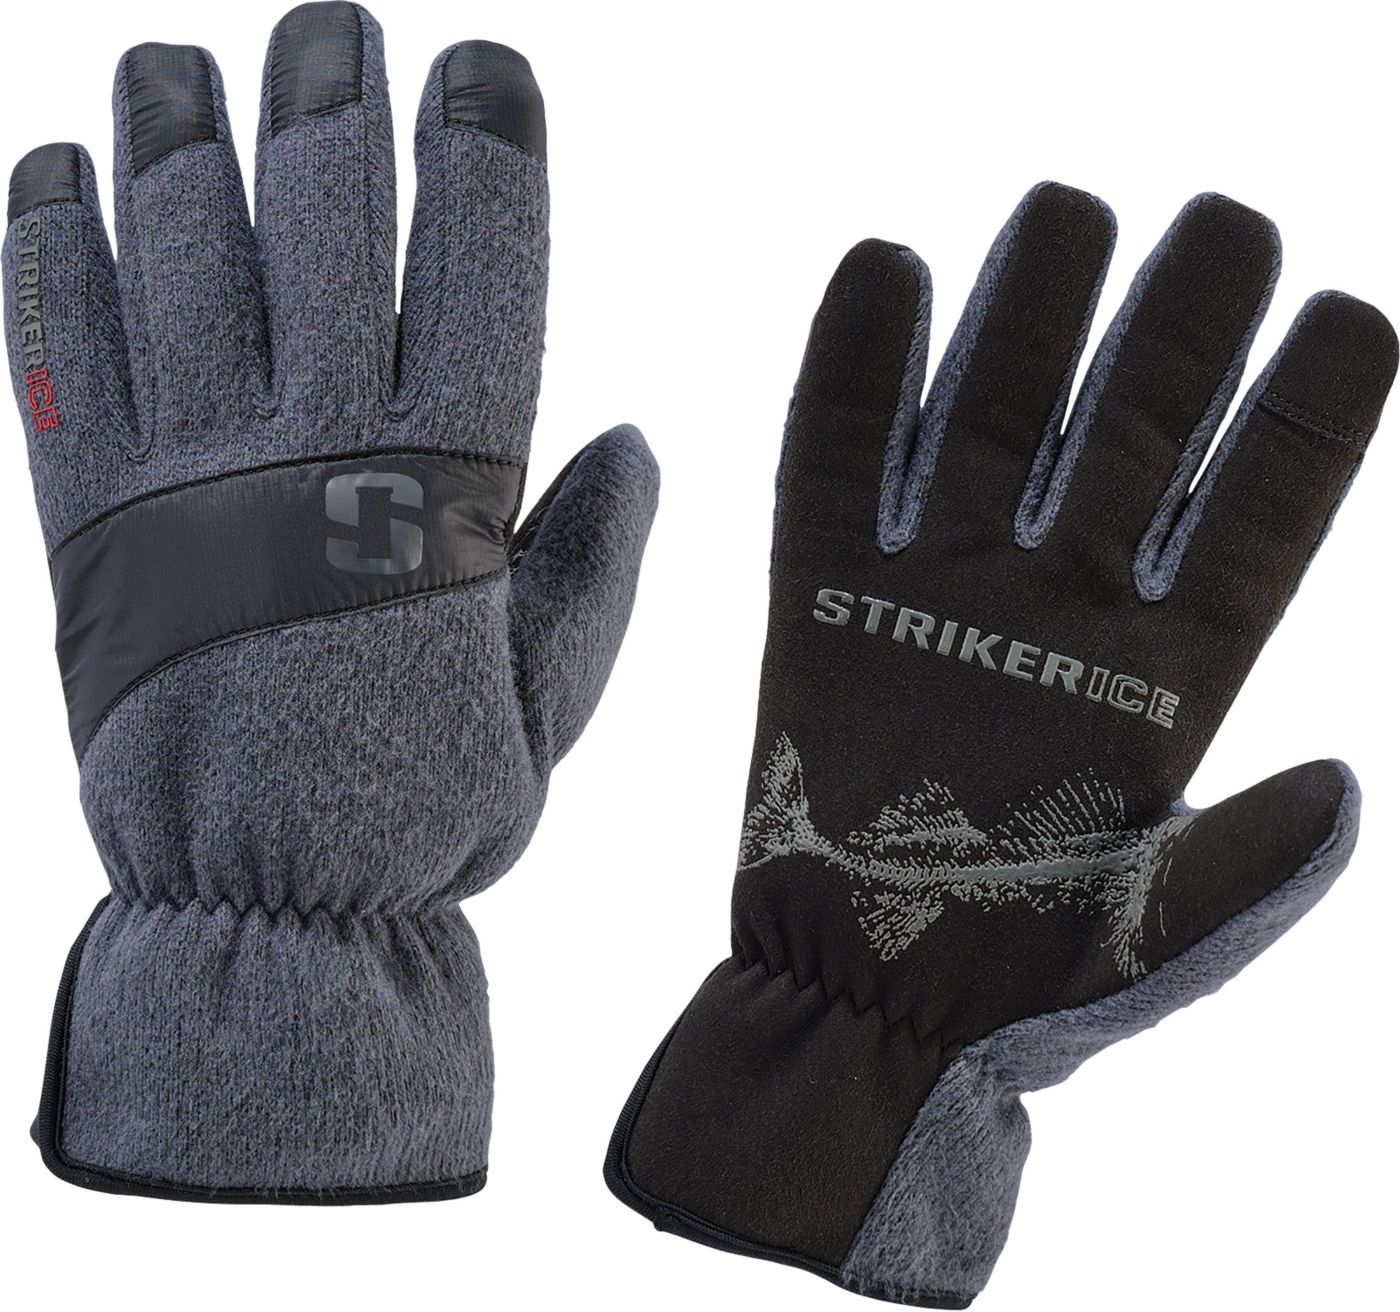 Striker Ice Men's Fleece Driving Ice Fishing Gloves